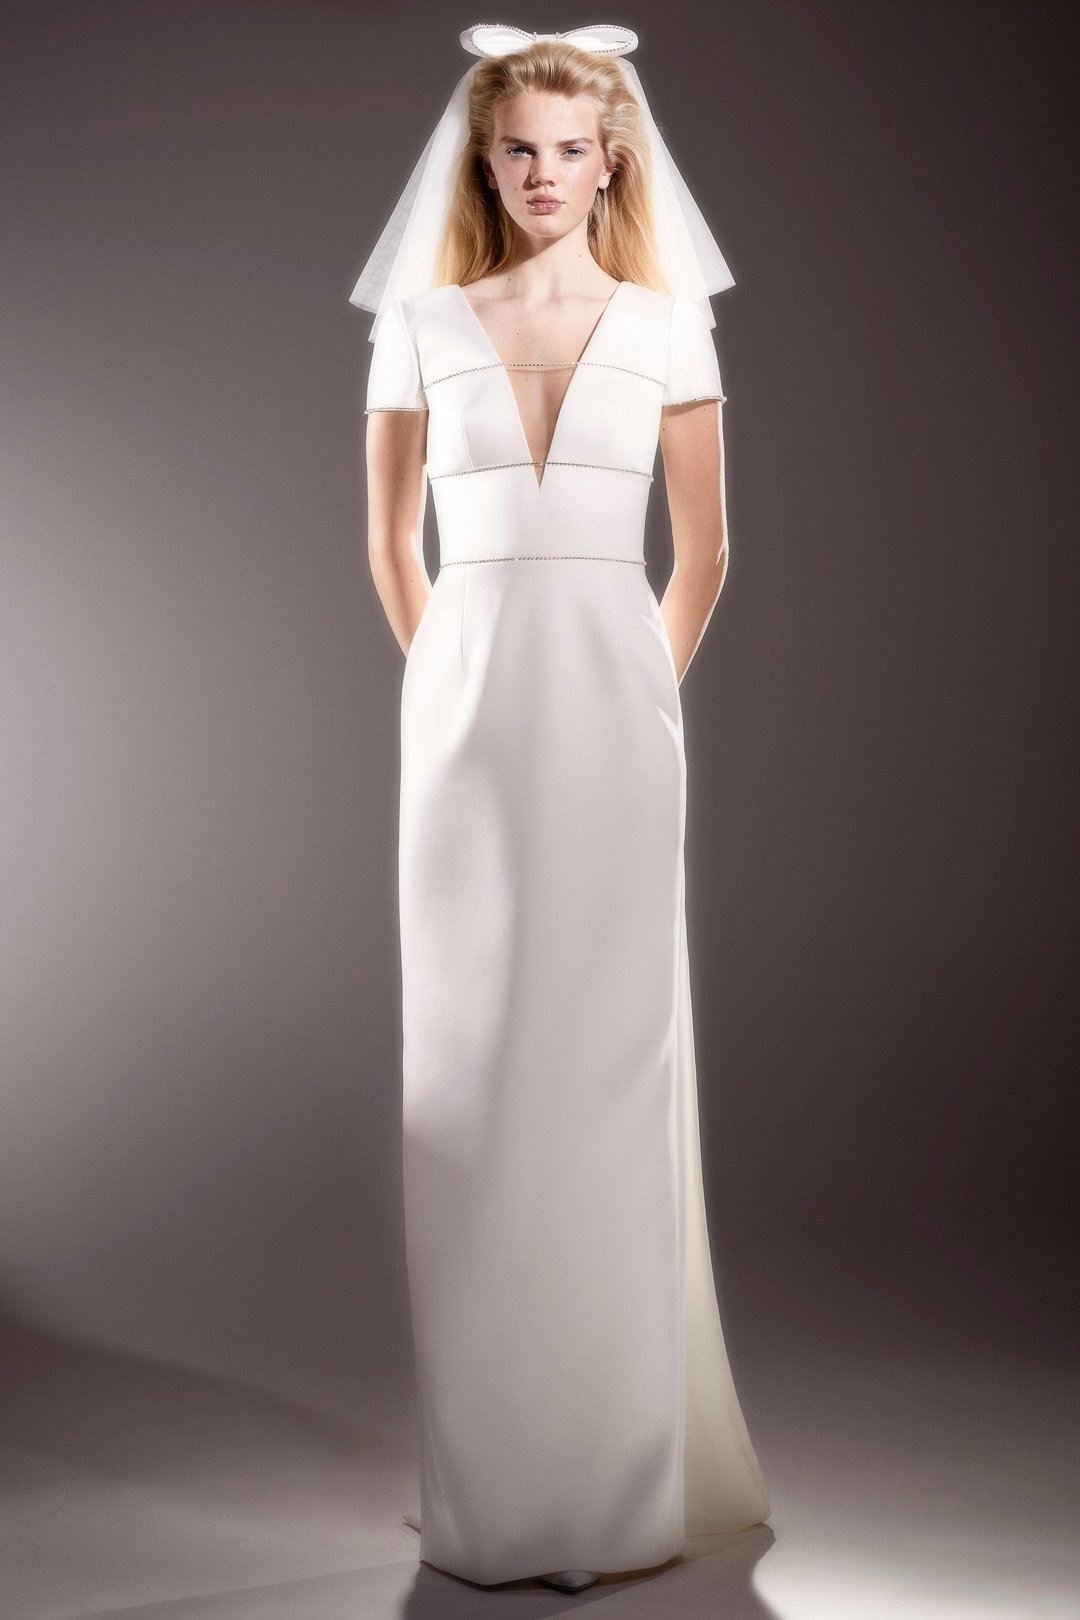 immaculate bow back column  dress photo